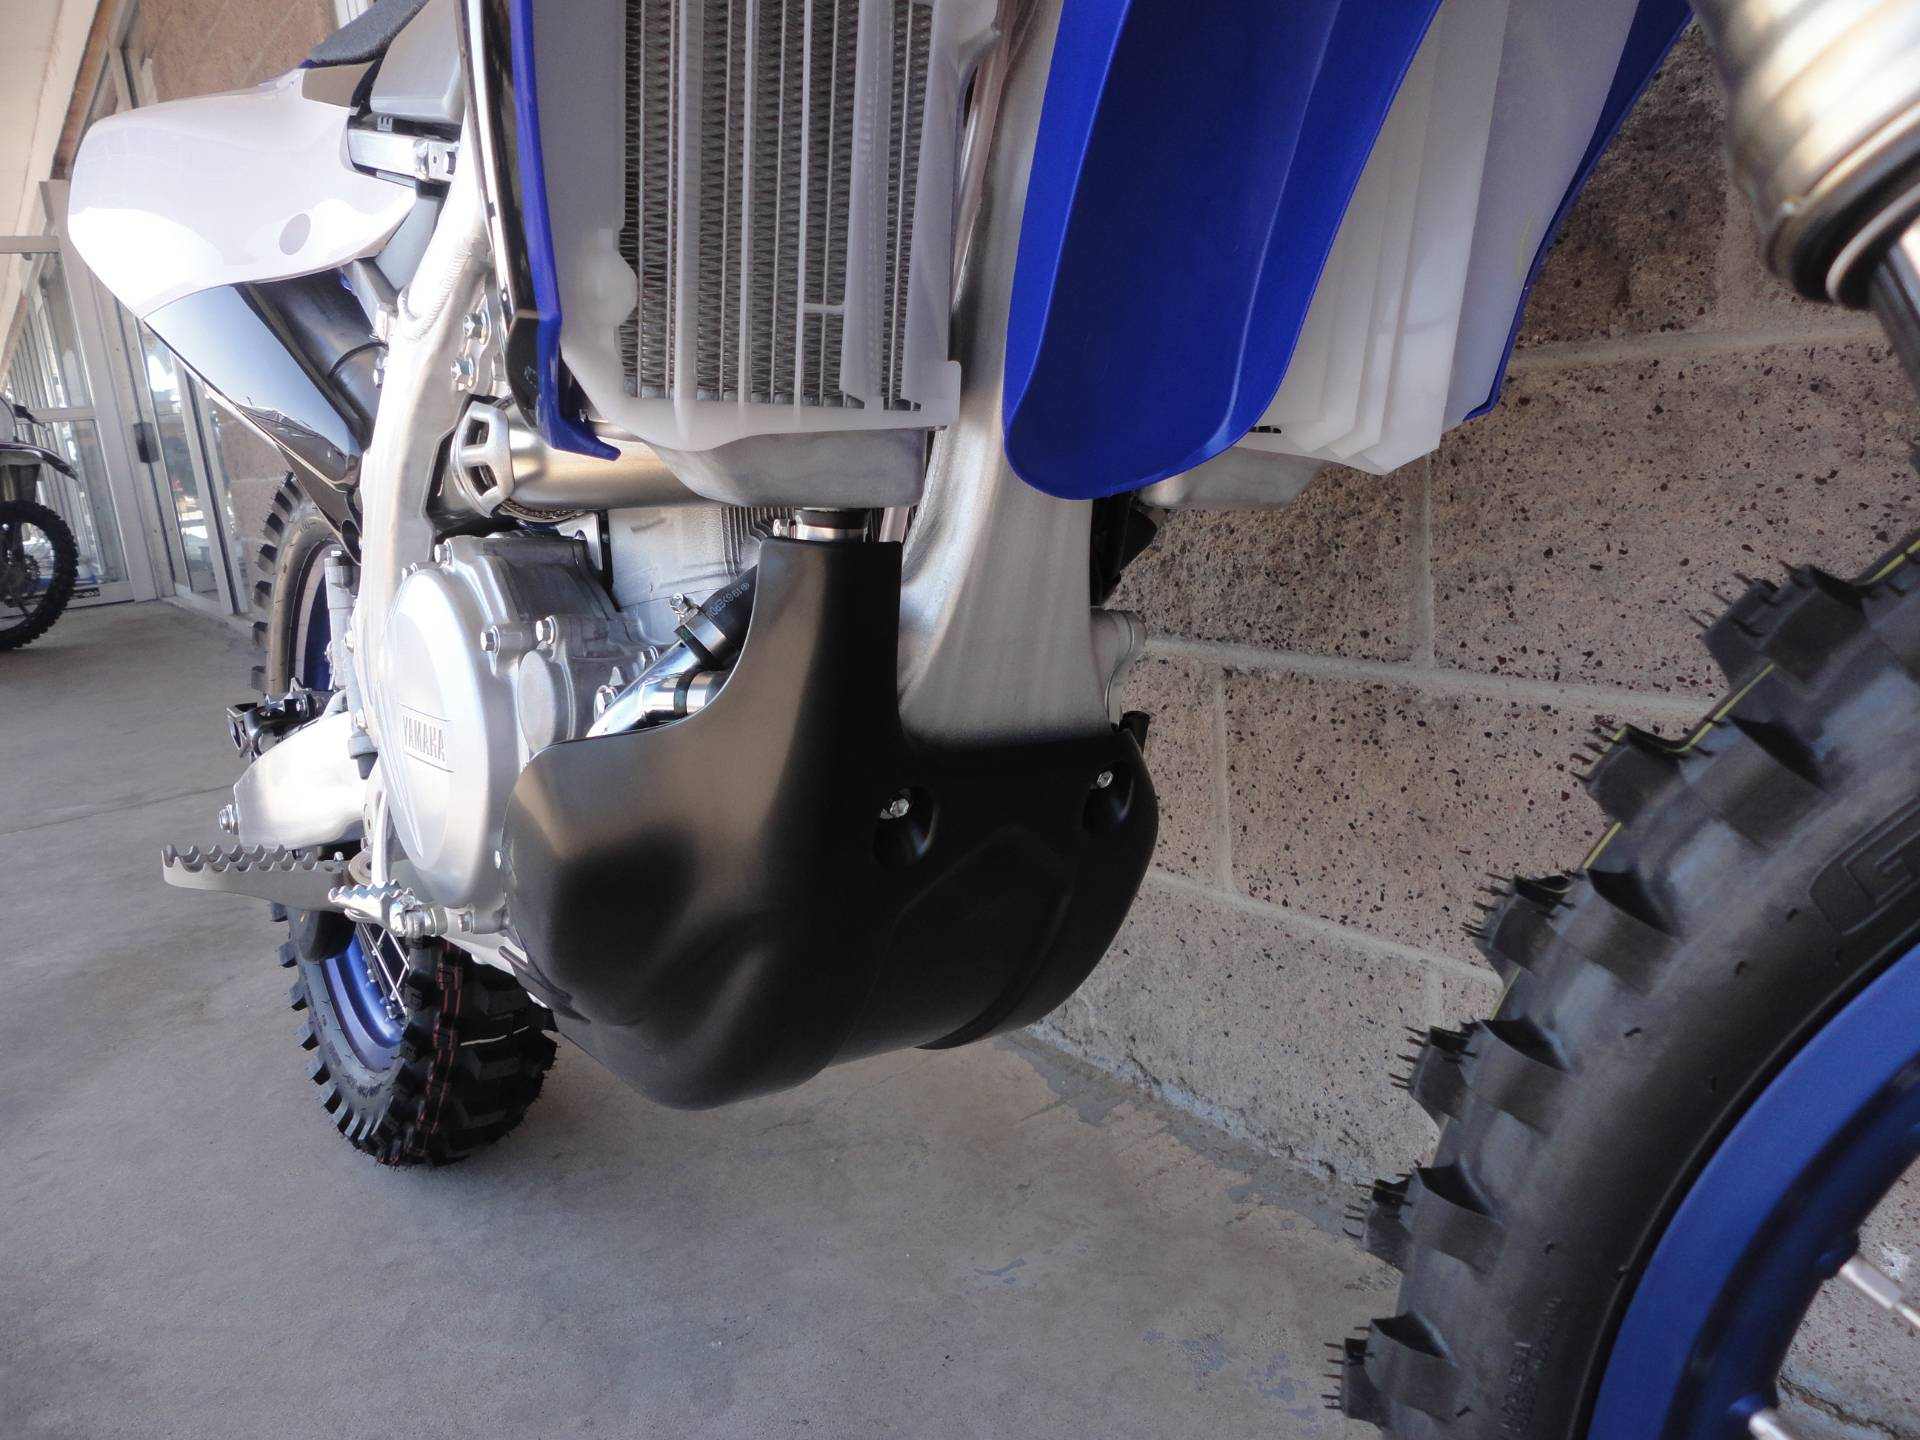 2020 Yamaha YZ450FX in Denver, Colorado - Photo 15